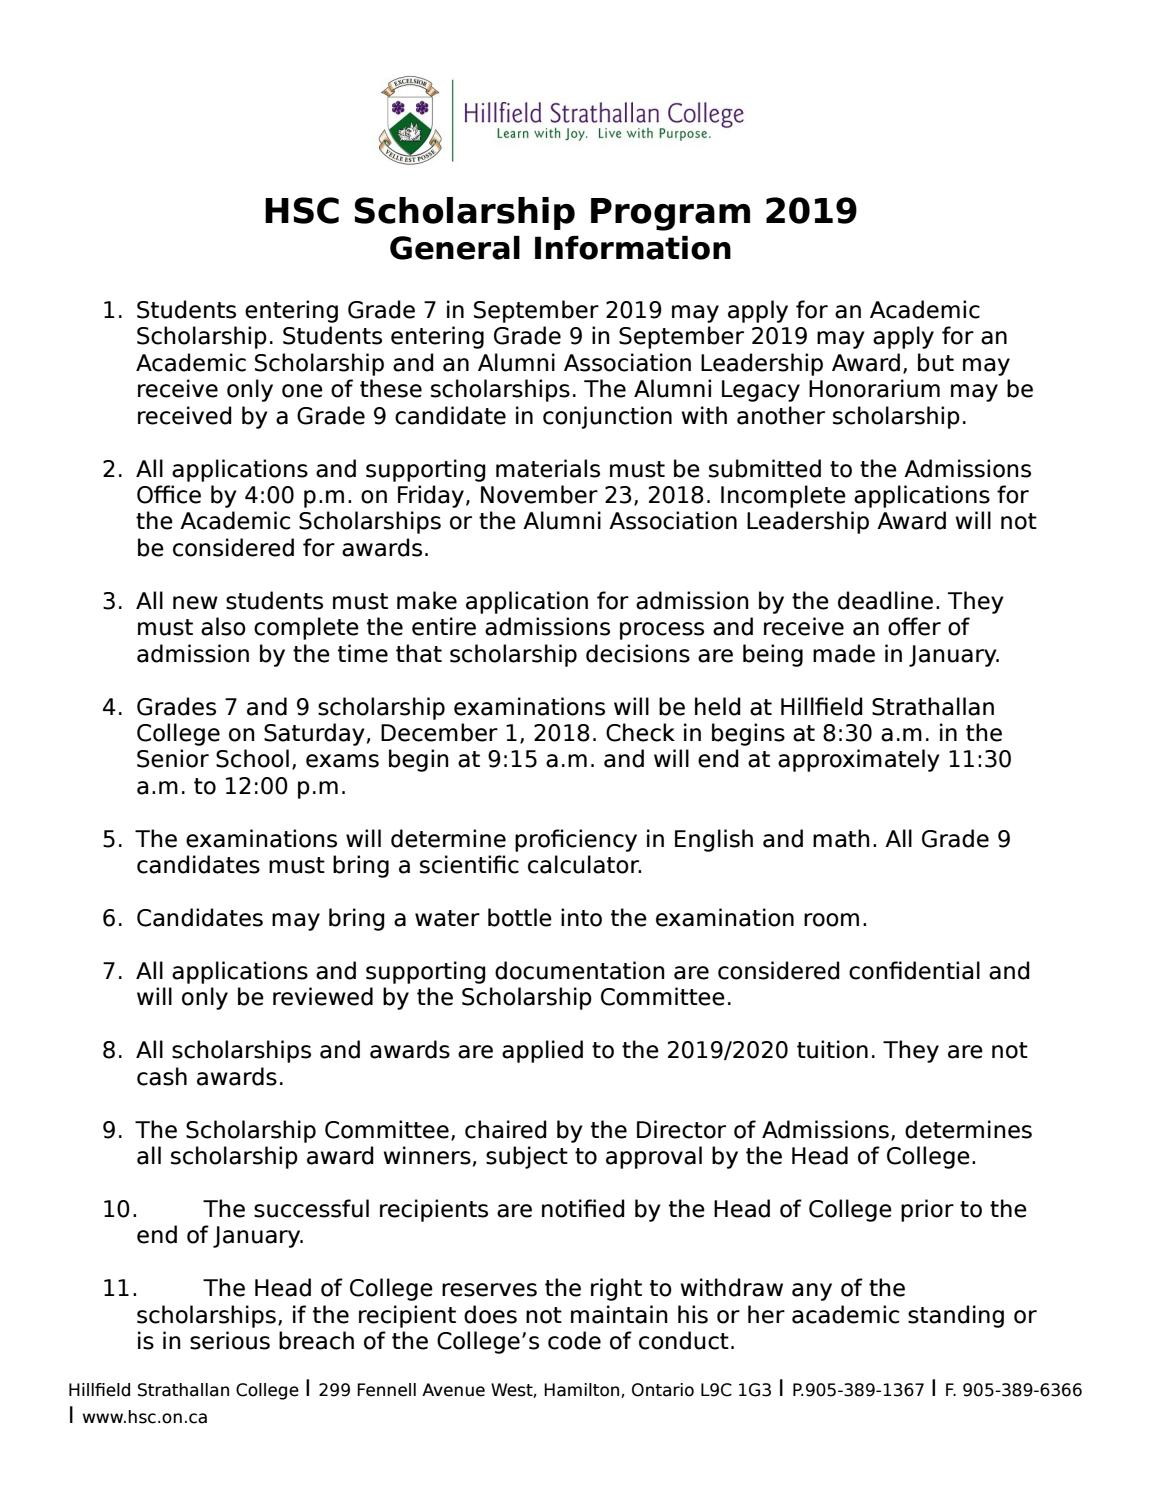 HSC Scholarship Program 2019 General Information by